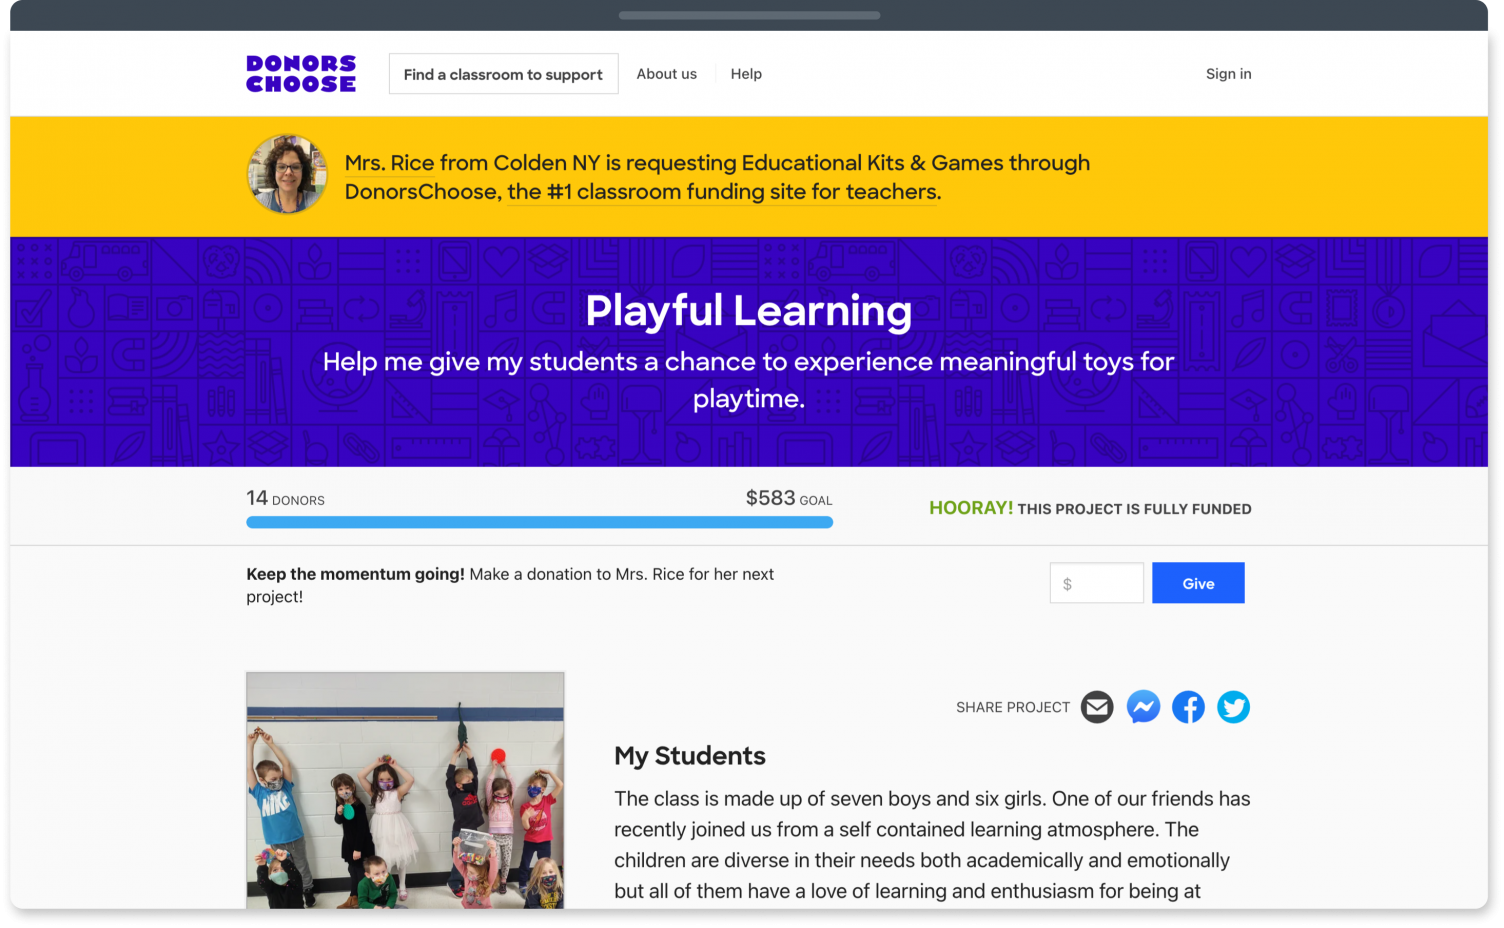 DonorsChoose fundraising website for teachers and classroom fundraisers.